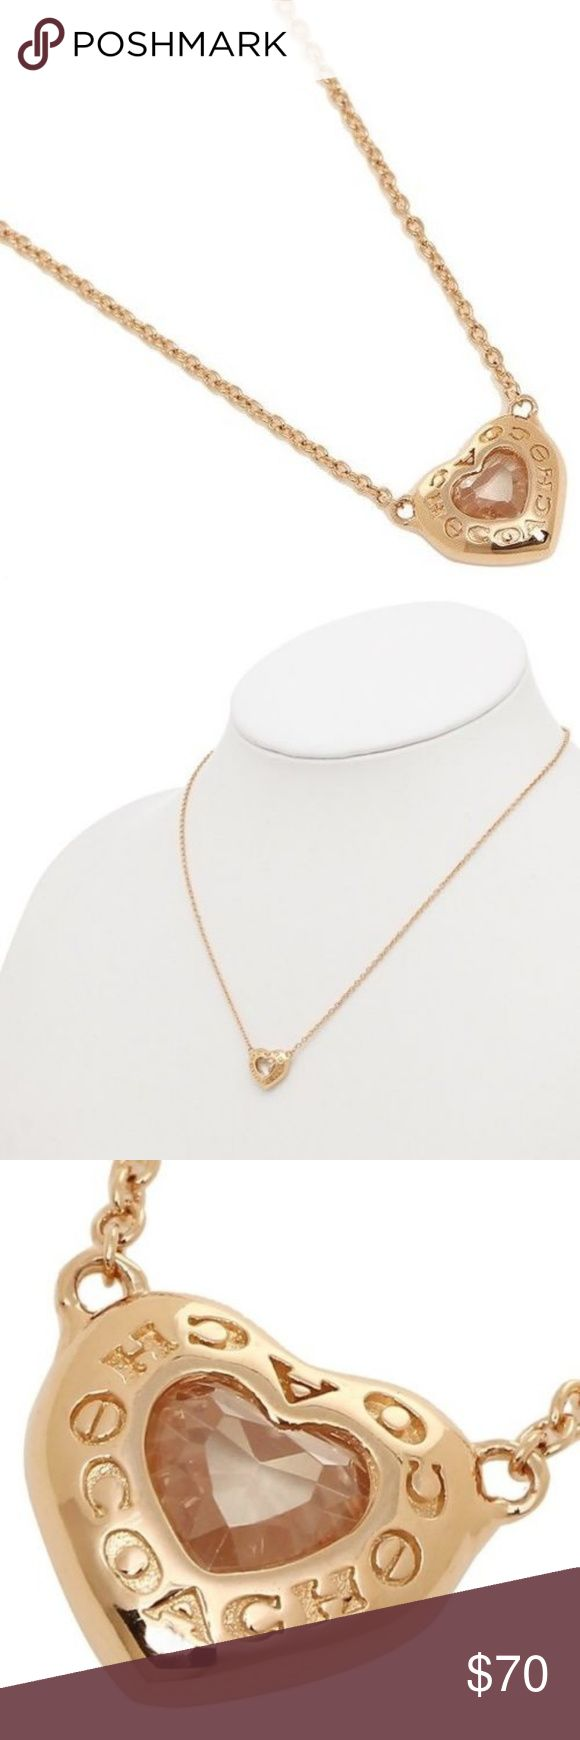 "Coach F27135 Open Circle Heart Rose Gold Necklace Coach F27135 Open Circle Heart Rose Gold Necklace  item# 273090178403  100% Authentic Coach!  Buy with confidence!  MSRP: $95.00  Style: F27135  Features:  Brand: Coach  Color: Rose Gold  Plated brass  Lobster clasp closure  Adjustable 7 1/2"" - 8 1/2"" (L)  Comes with Coach gift box  Imported  Please feel free to ask any questions. Happy shopping! Coach Jewelry Necklaces"